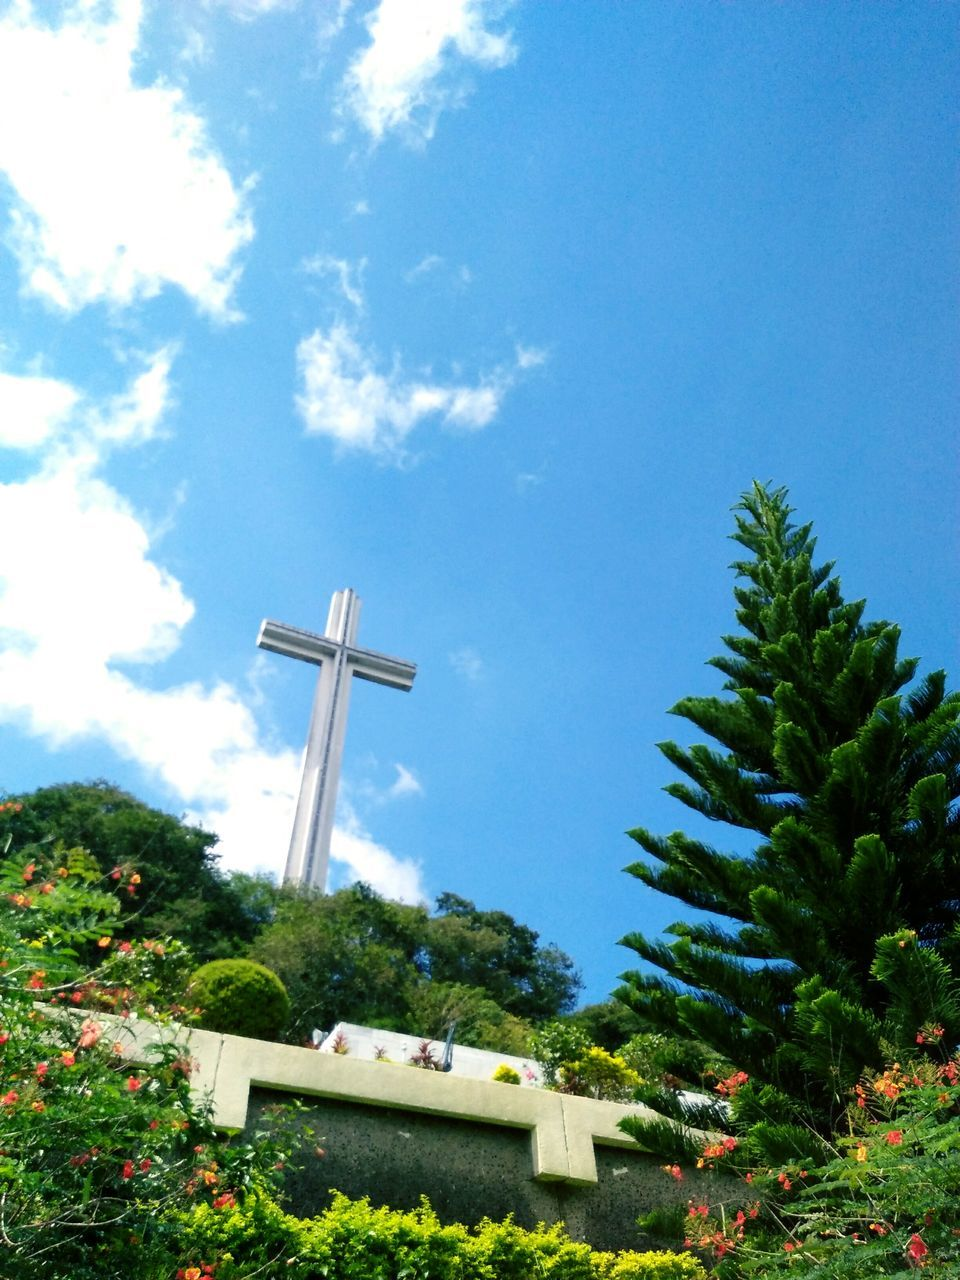 cross, tree, religion, spirituality, no people, day, sky, low angle view, blue, architecture, outdoors, nature